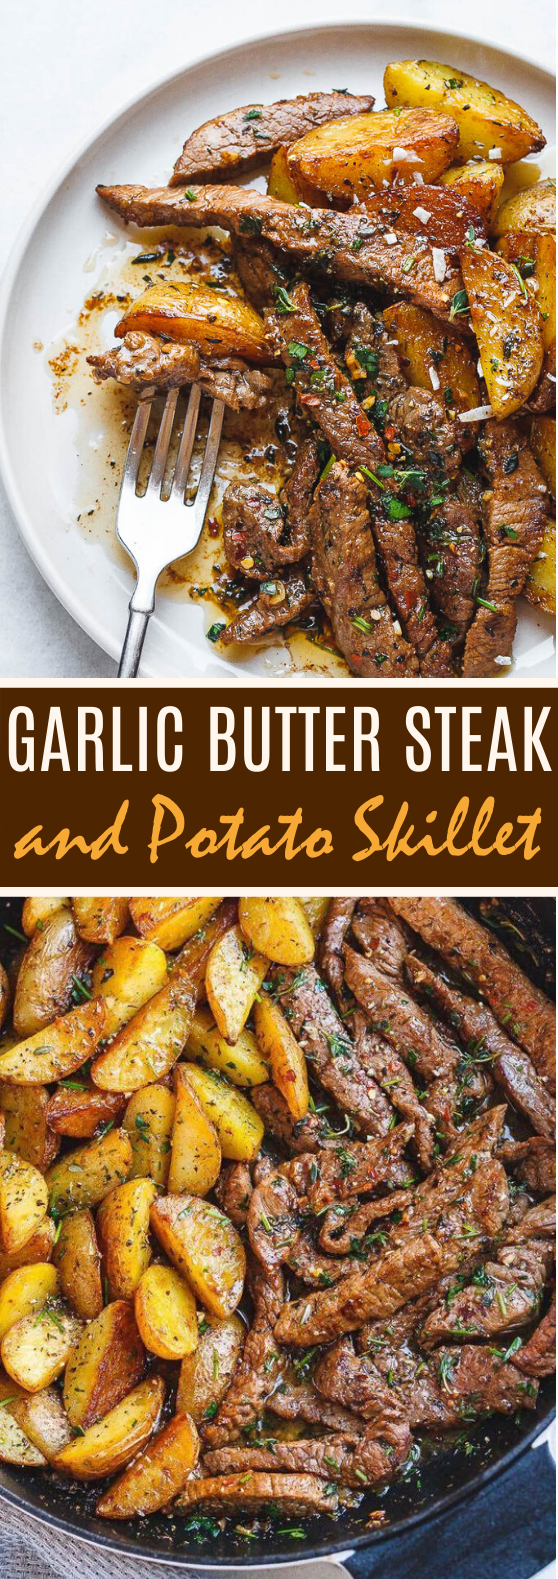 Garlic Butter Steak And Potatoes Skillet #easy #dinner #beef #recipes #weeknight